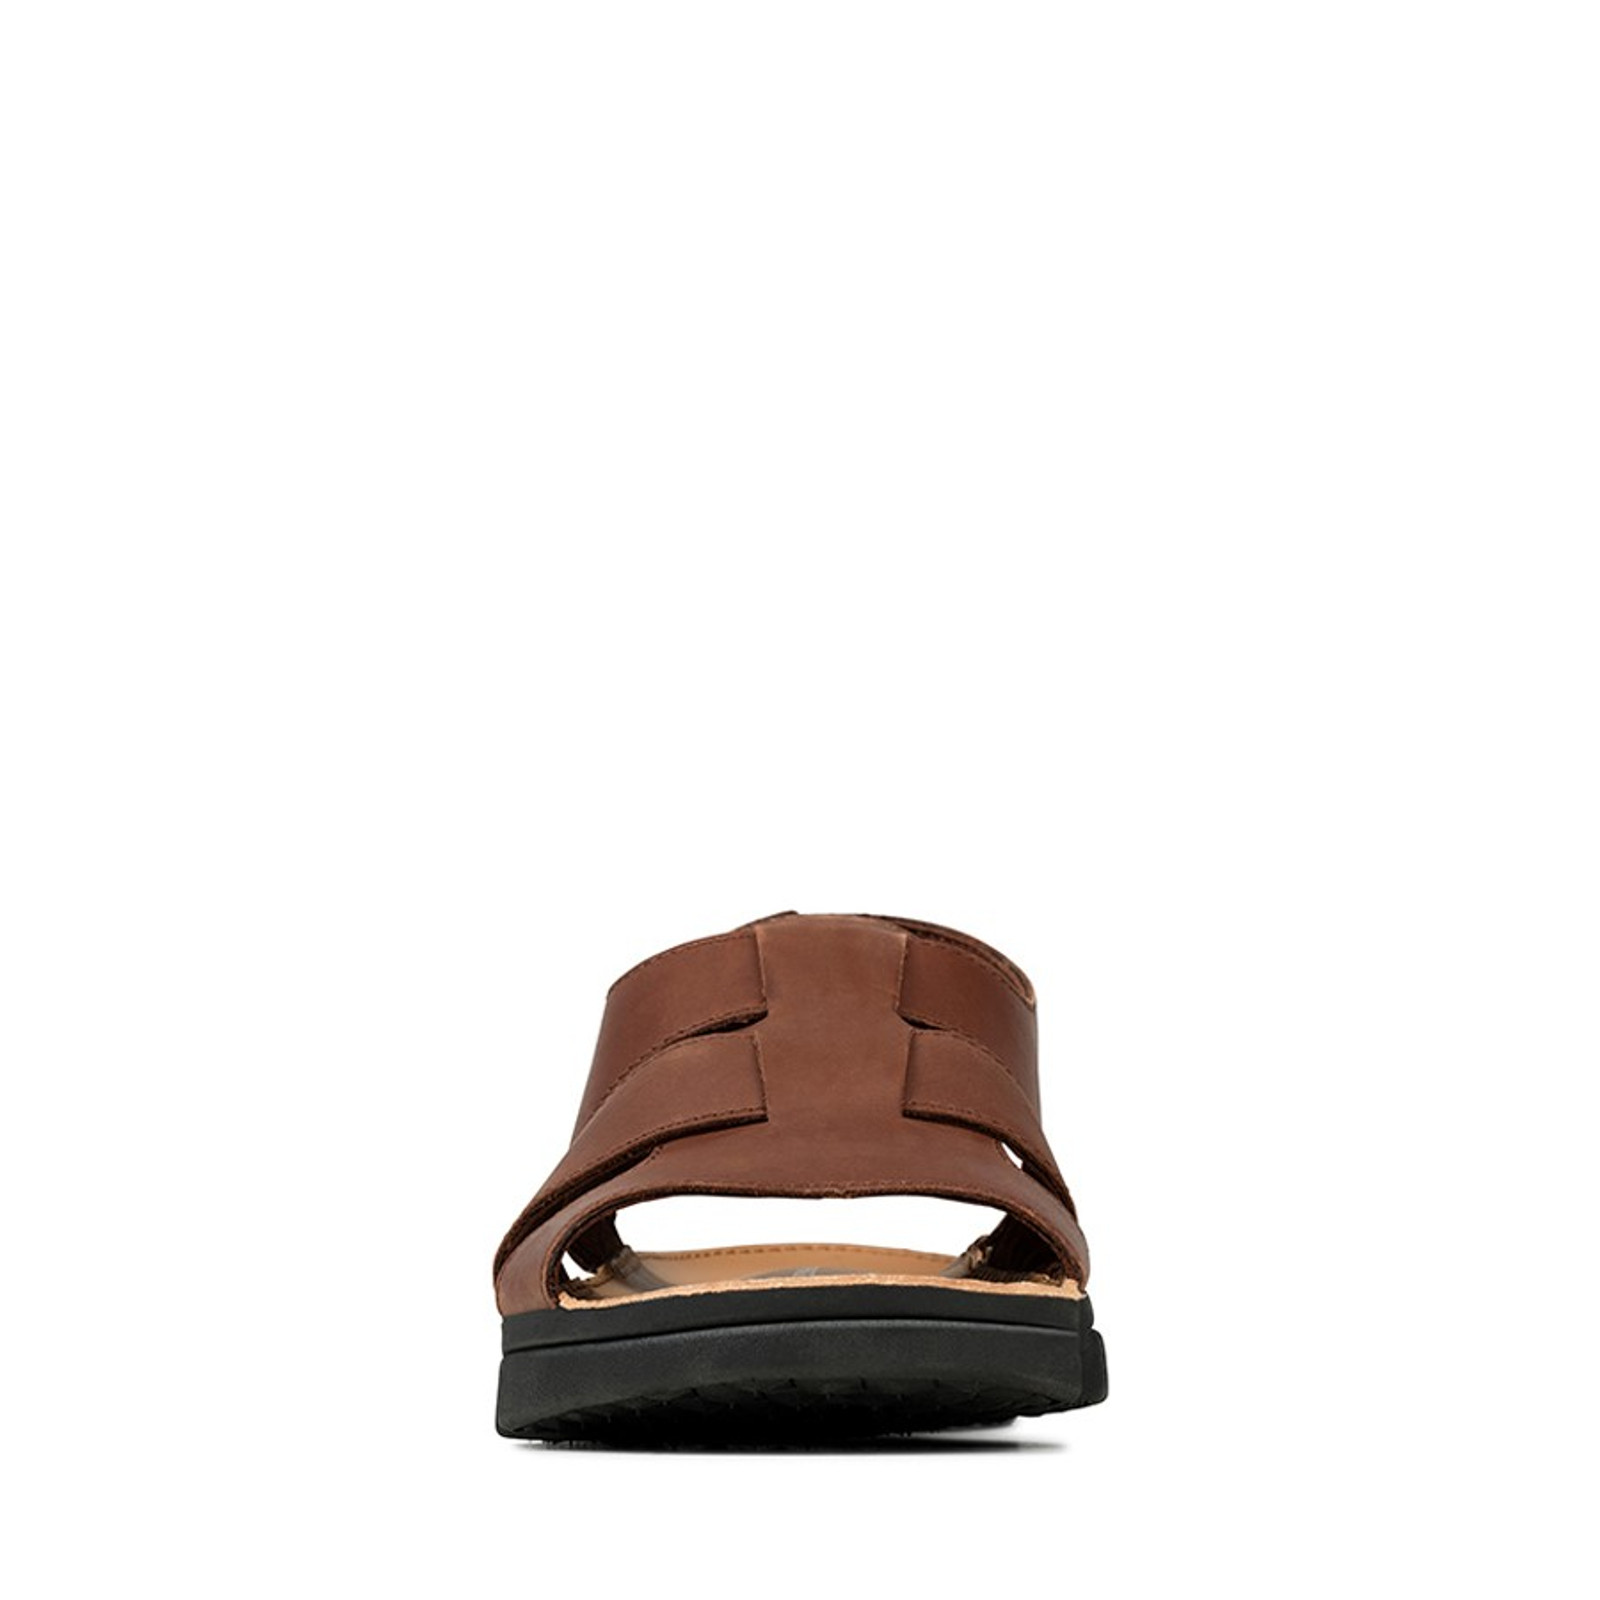 Clarks Mens TRI COVE SKY British Tan Leather